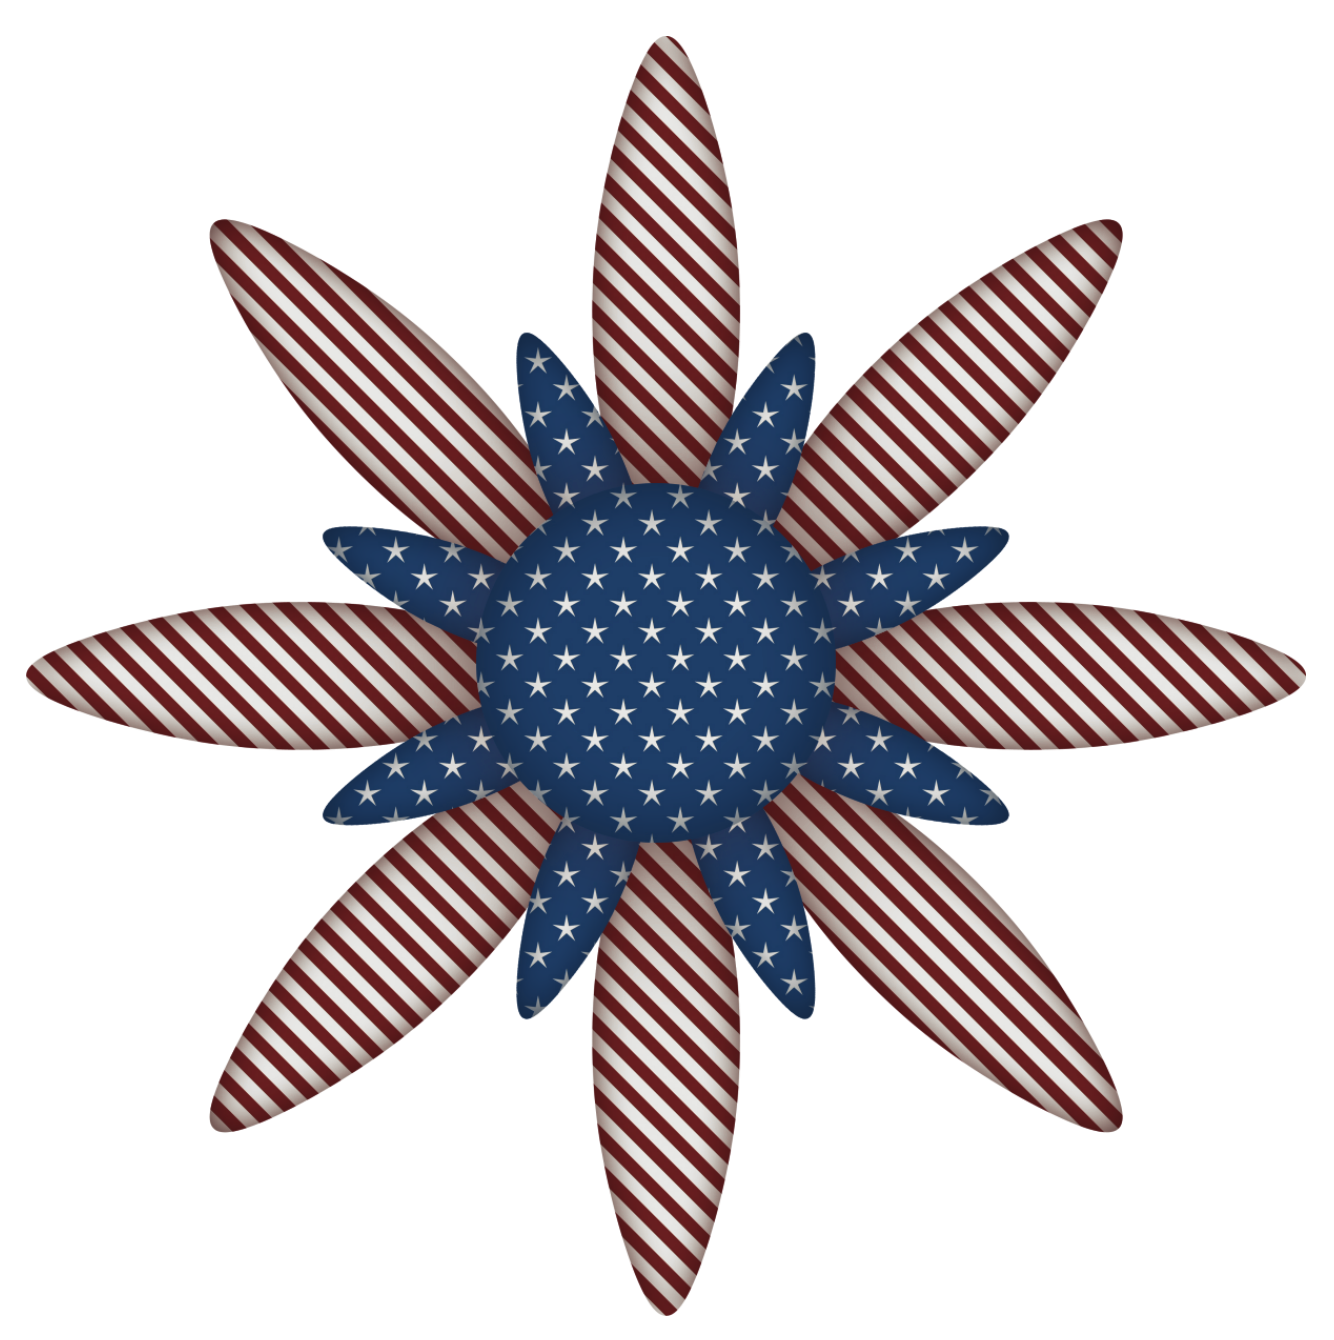 Us 13 star flag clipart banner black and white USA Flag Flower Decoration PNG Clipart Picture | July 4th Clip Art ... banner black and white